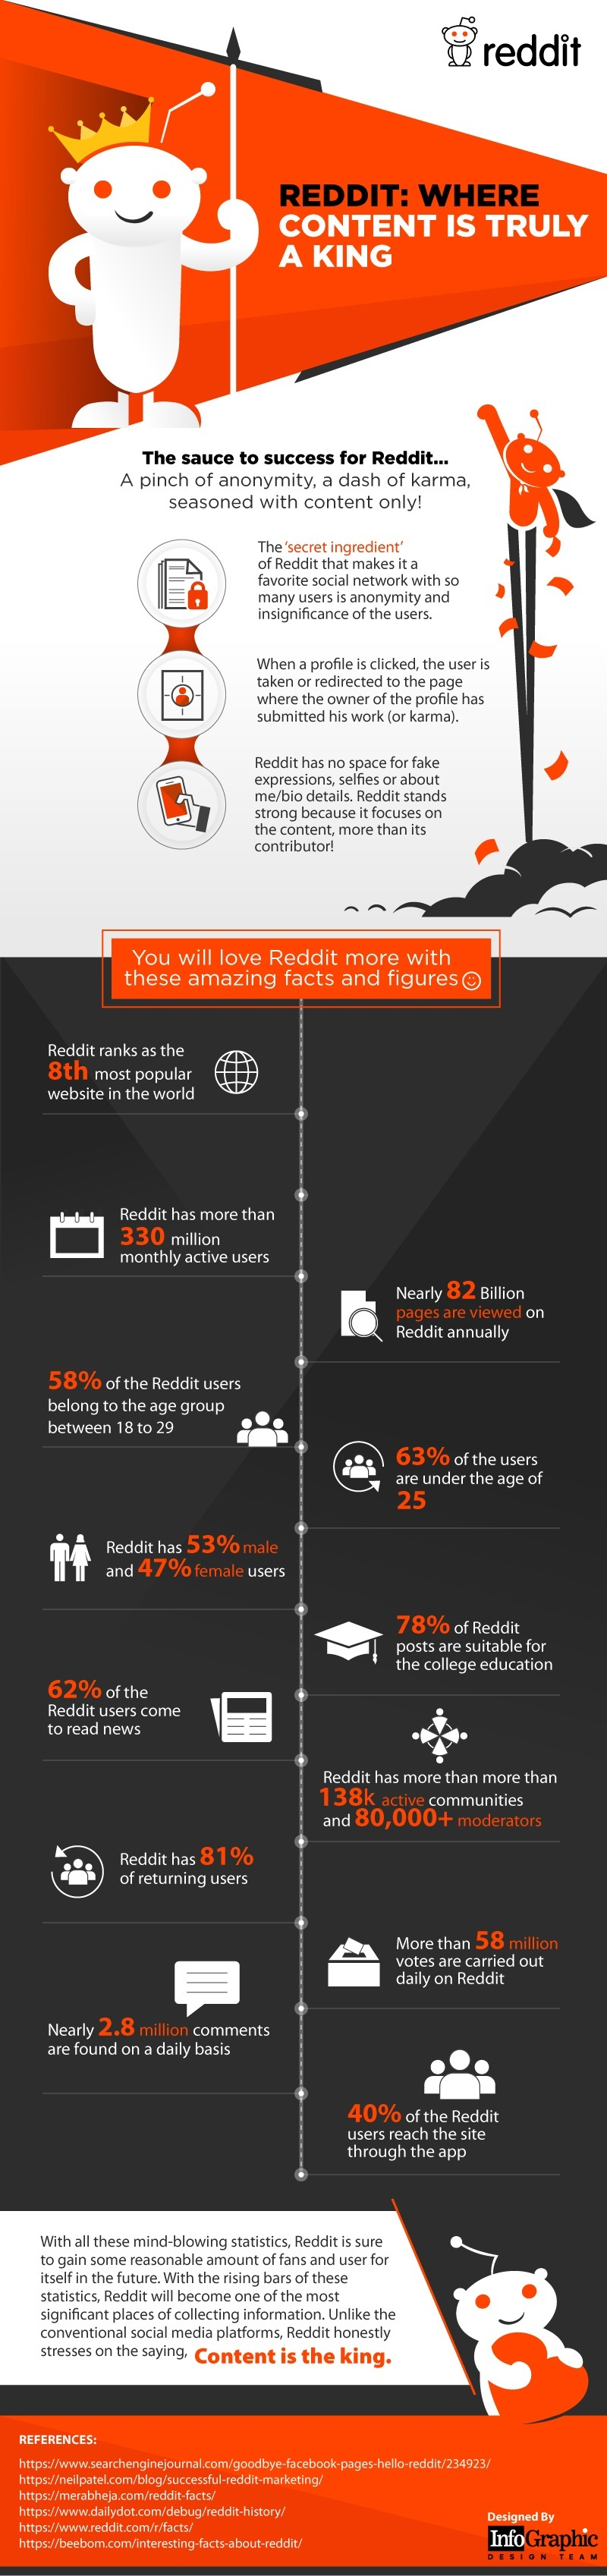 13 Fascinating Facts About Reddit [Infographic] | Social Media Today